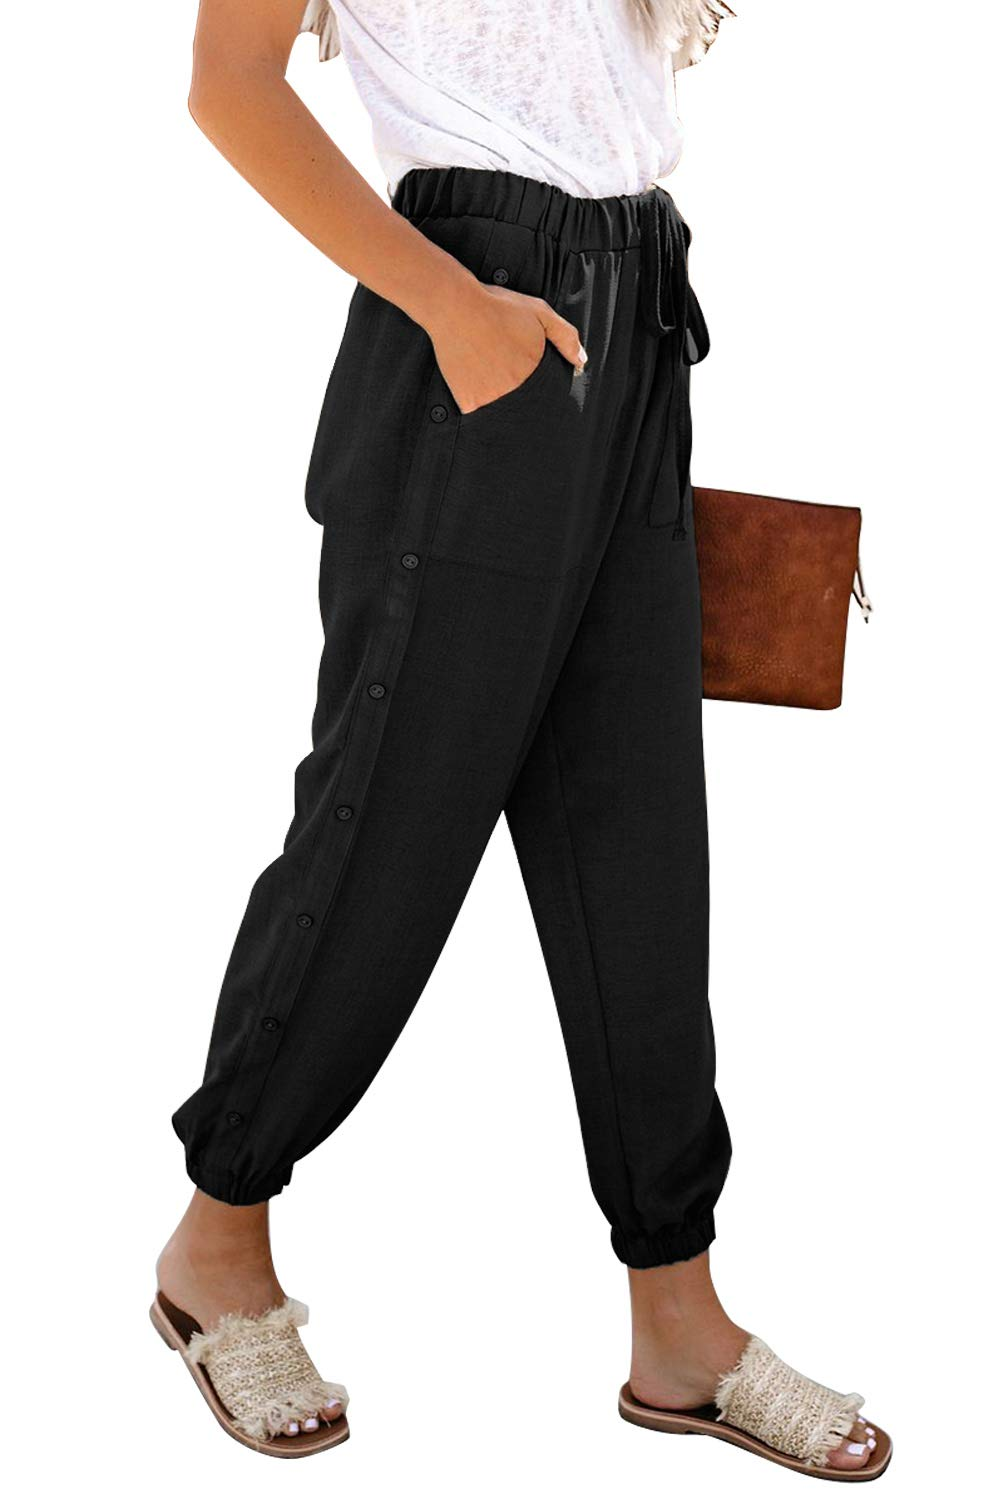 NEWFANGLE Women\'s Linen Casual Pants Drawstring Elastic Waist with Pockets Solid Comfy Loose Fit Trousers,Black,S